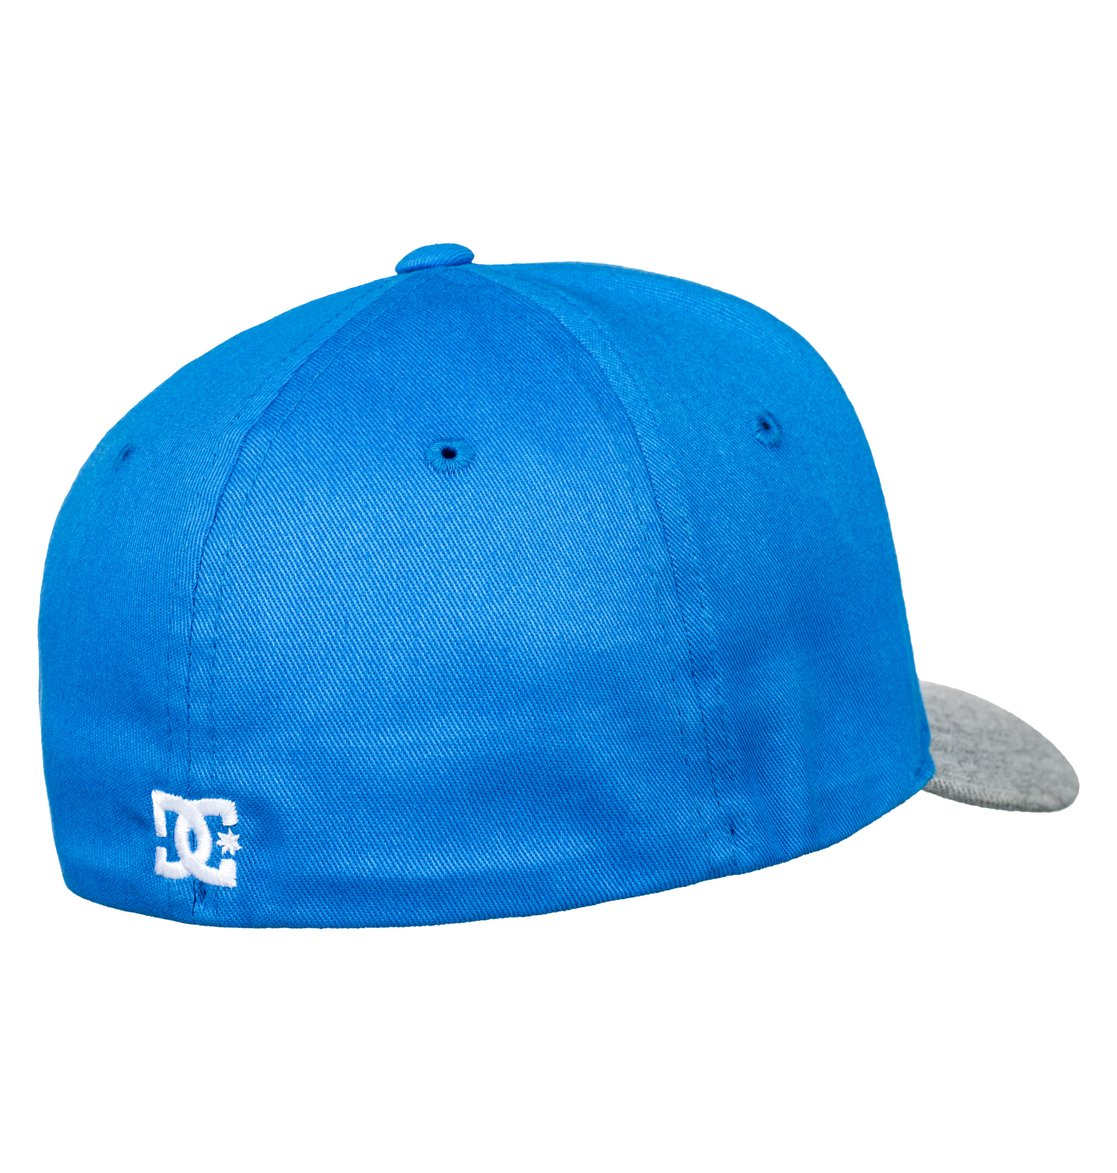 2 Gorra Flexifit- Cap Star 2 Azul ADBHA03026 DC Shoes 5d7b9301d87